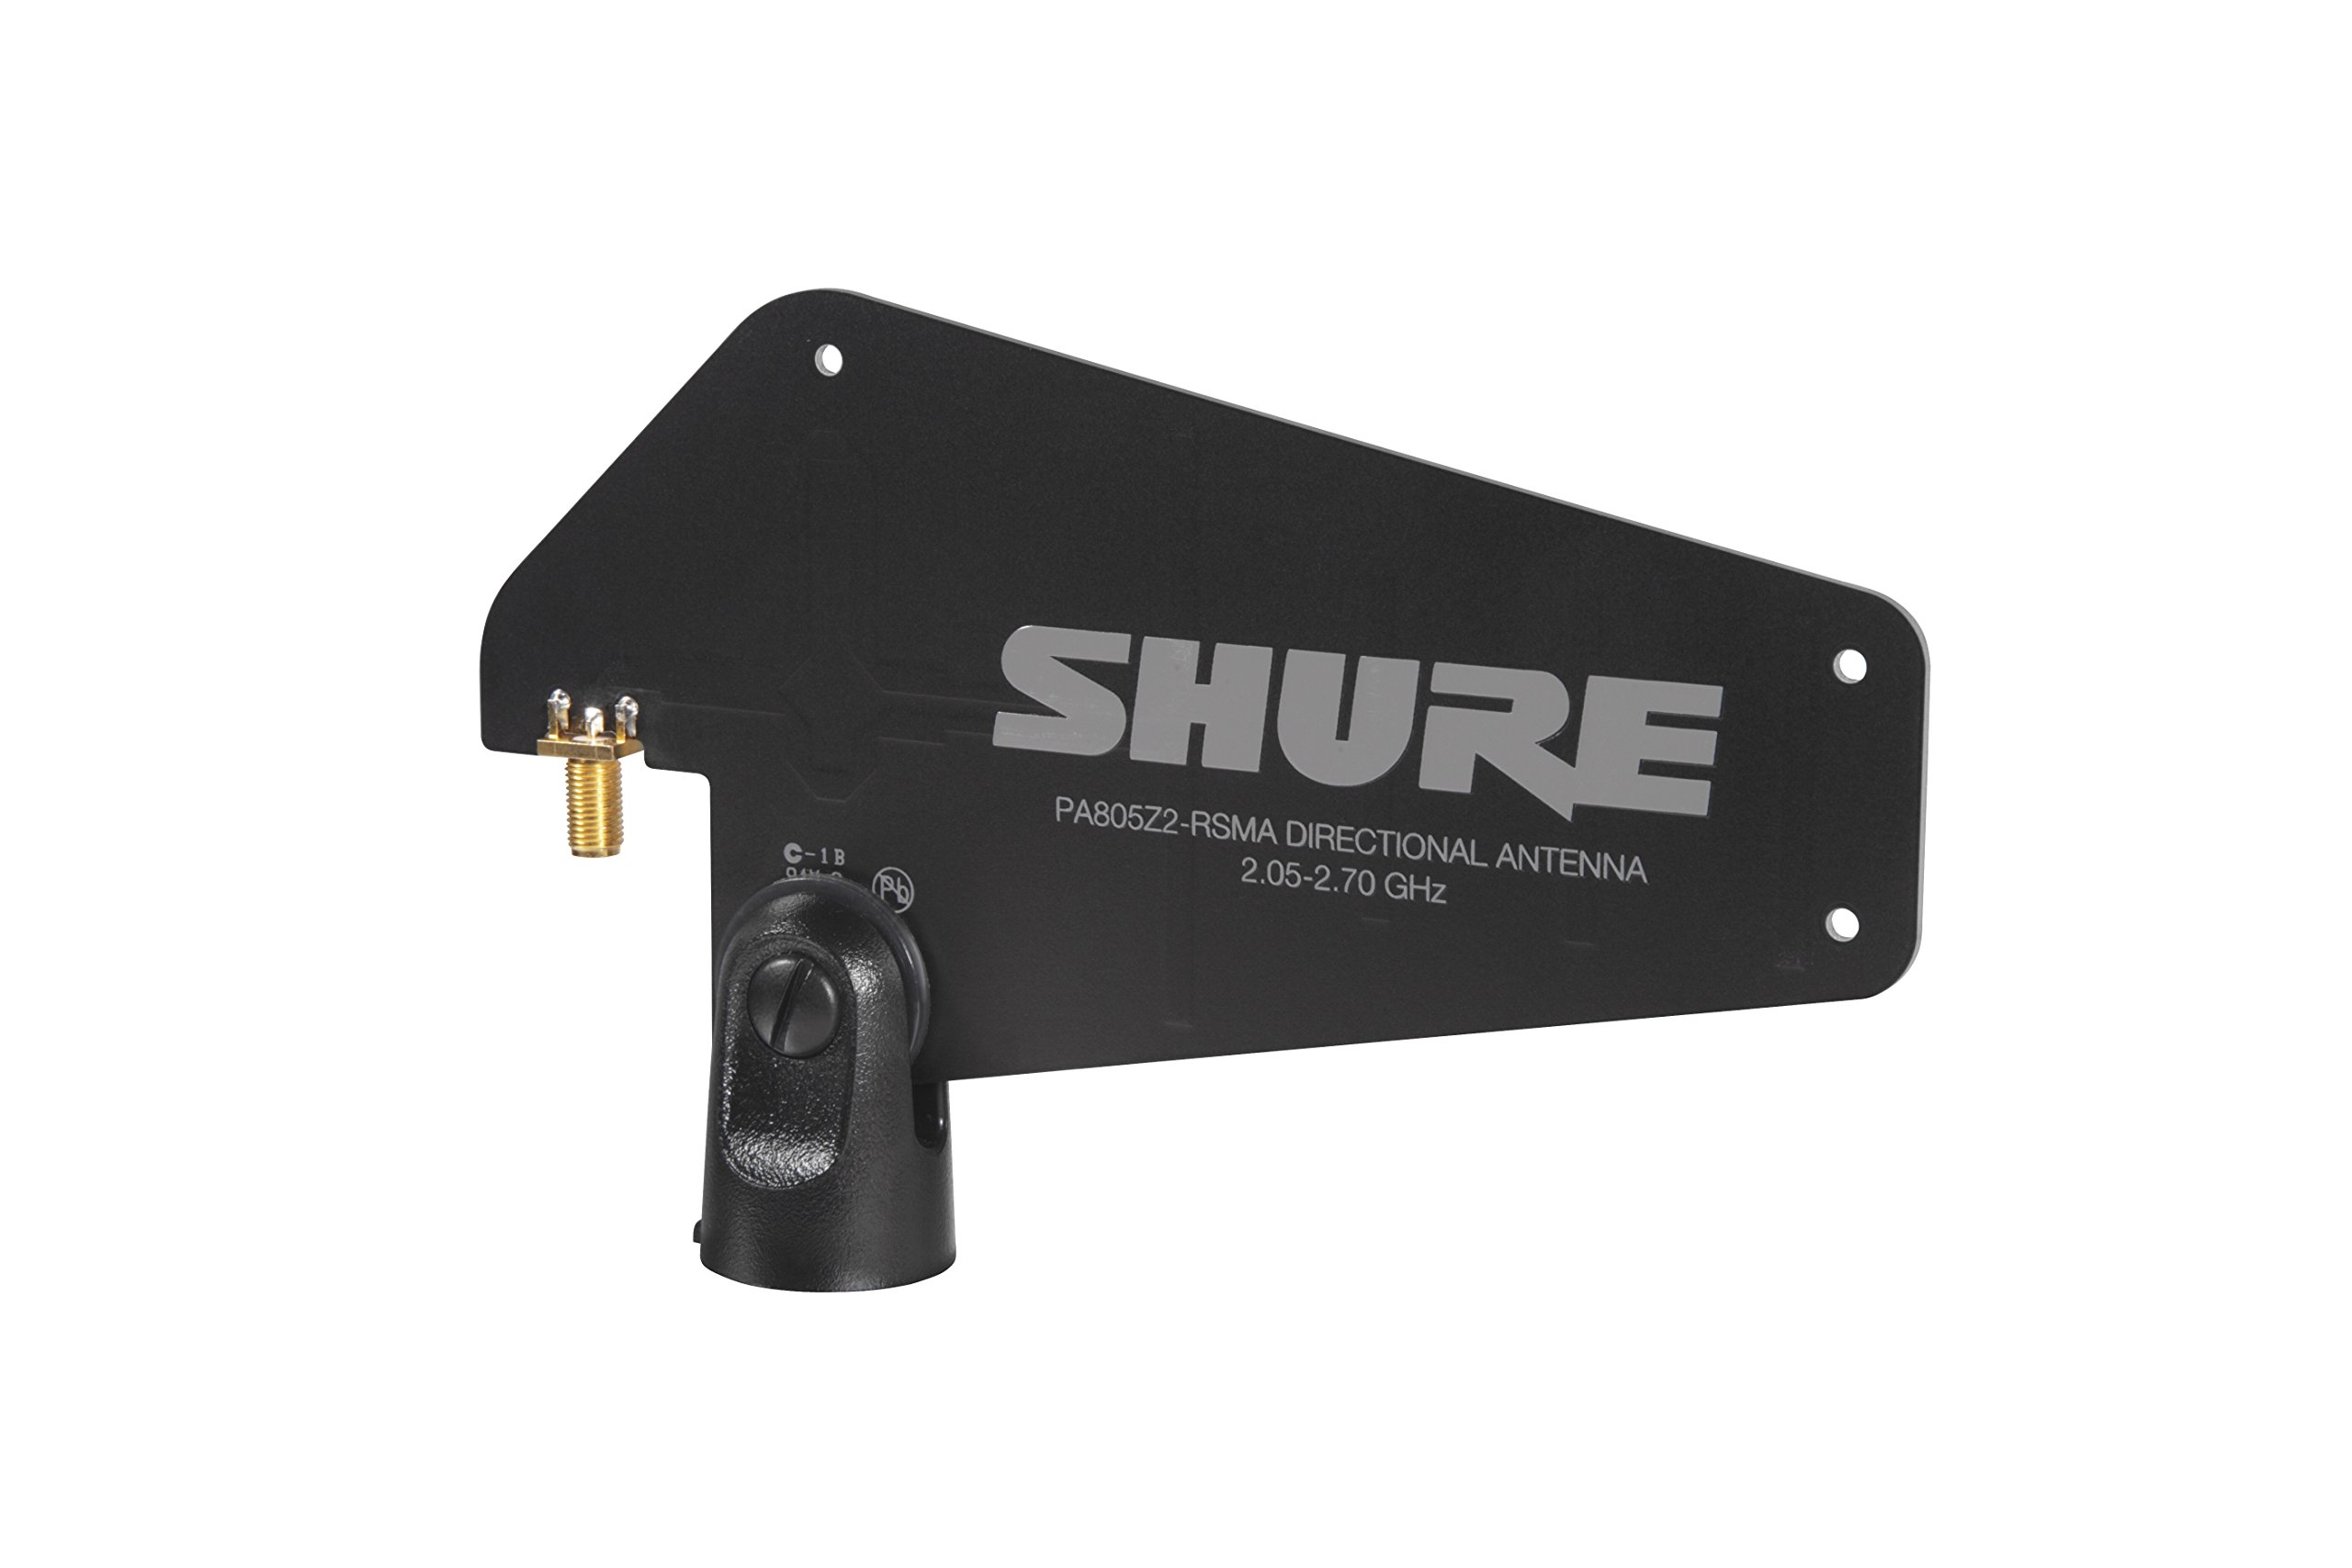 Shure PA805Z2-RSMA Passive Directional Antenna for GLX-D Advanced Wireless Systems by Shure